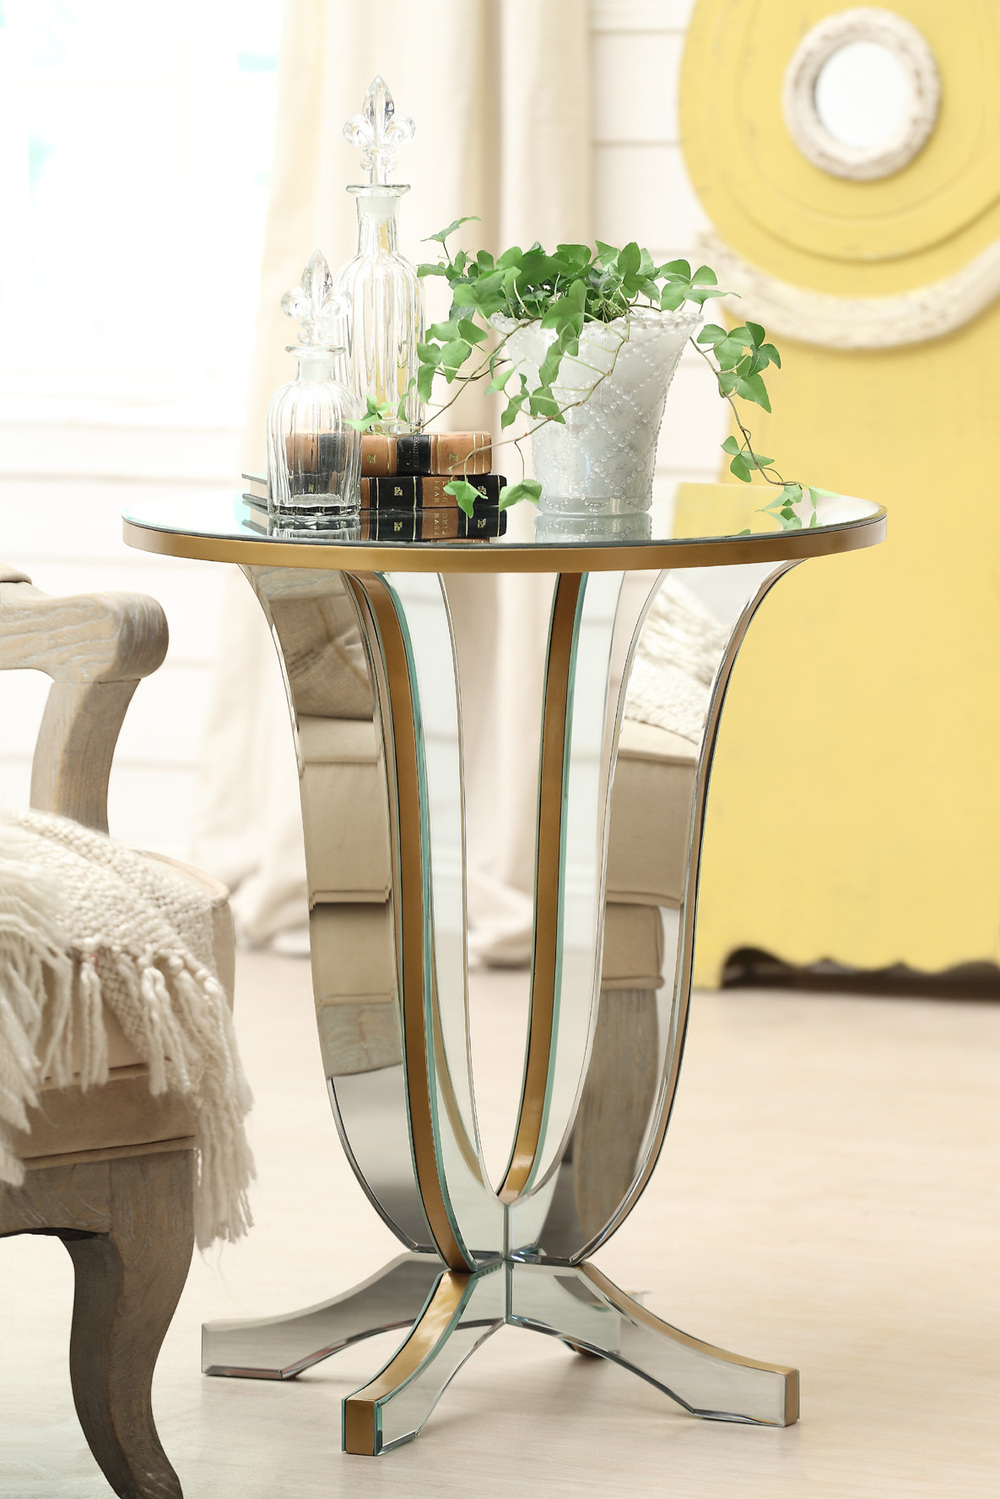 furniture for target decorative kijiji glass antique accent tables living modern gold white round outdoor table room drum full size side chairs ethan allen occasional rectangular